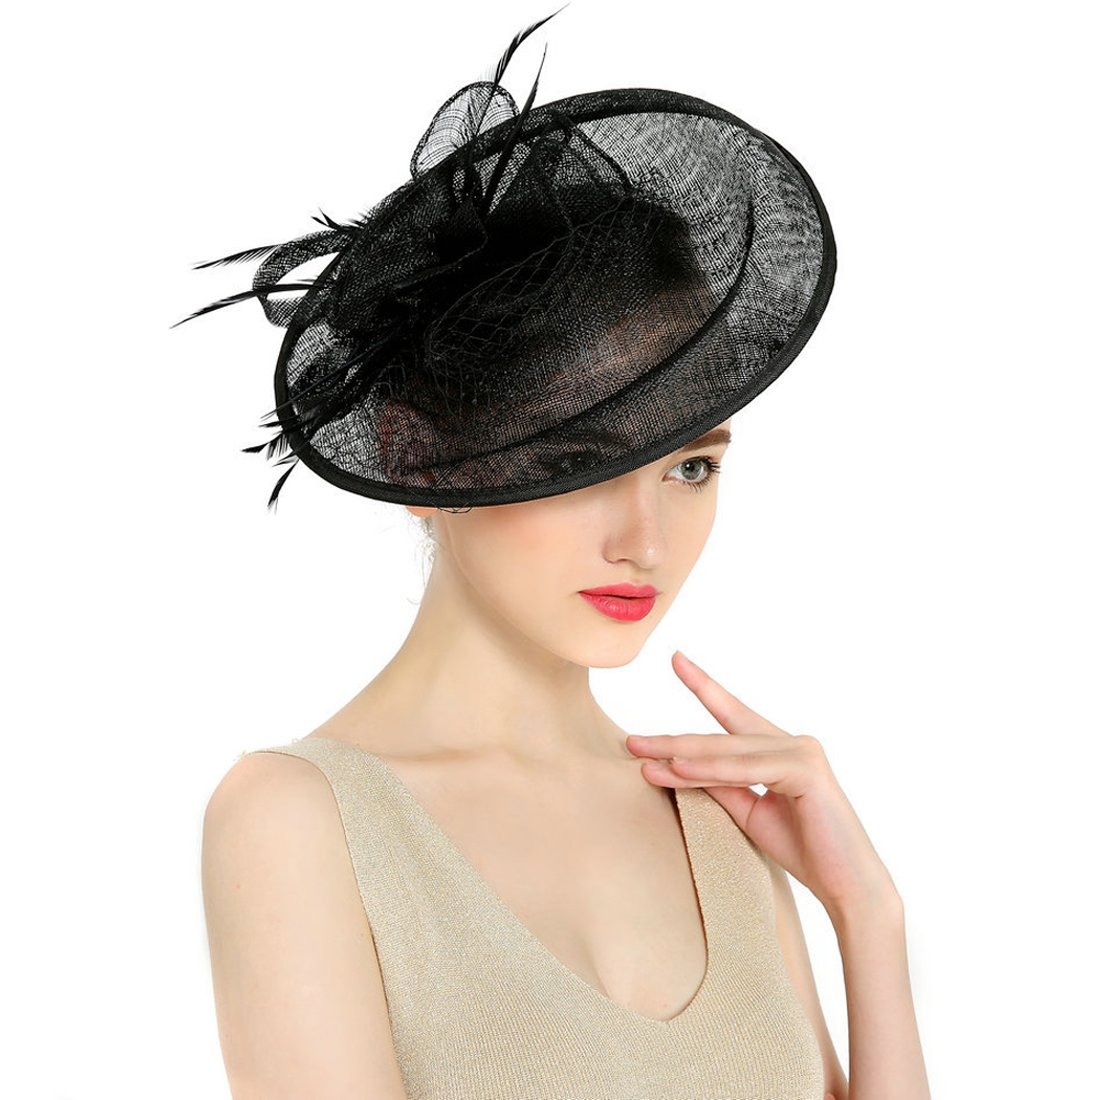 Details about KAXIDY Ladies Hats Fascinators Hair Clips Feather Party  Flower Wedding 48a2f4f8f26